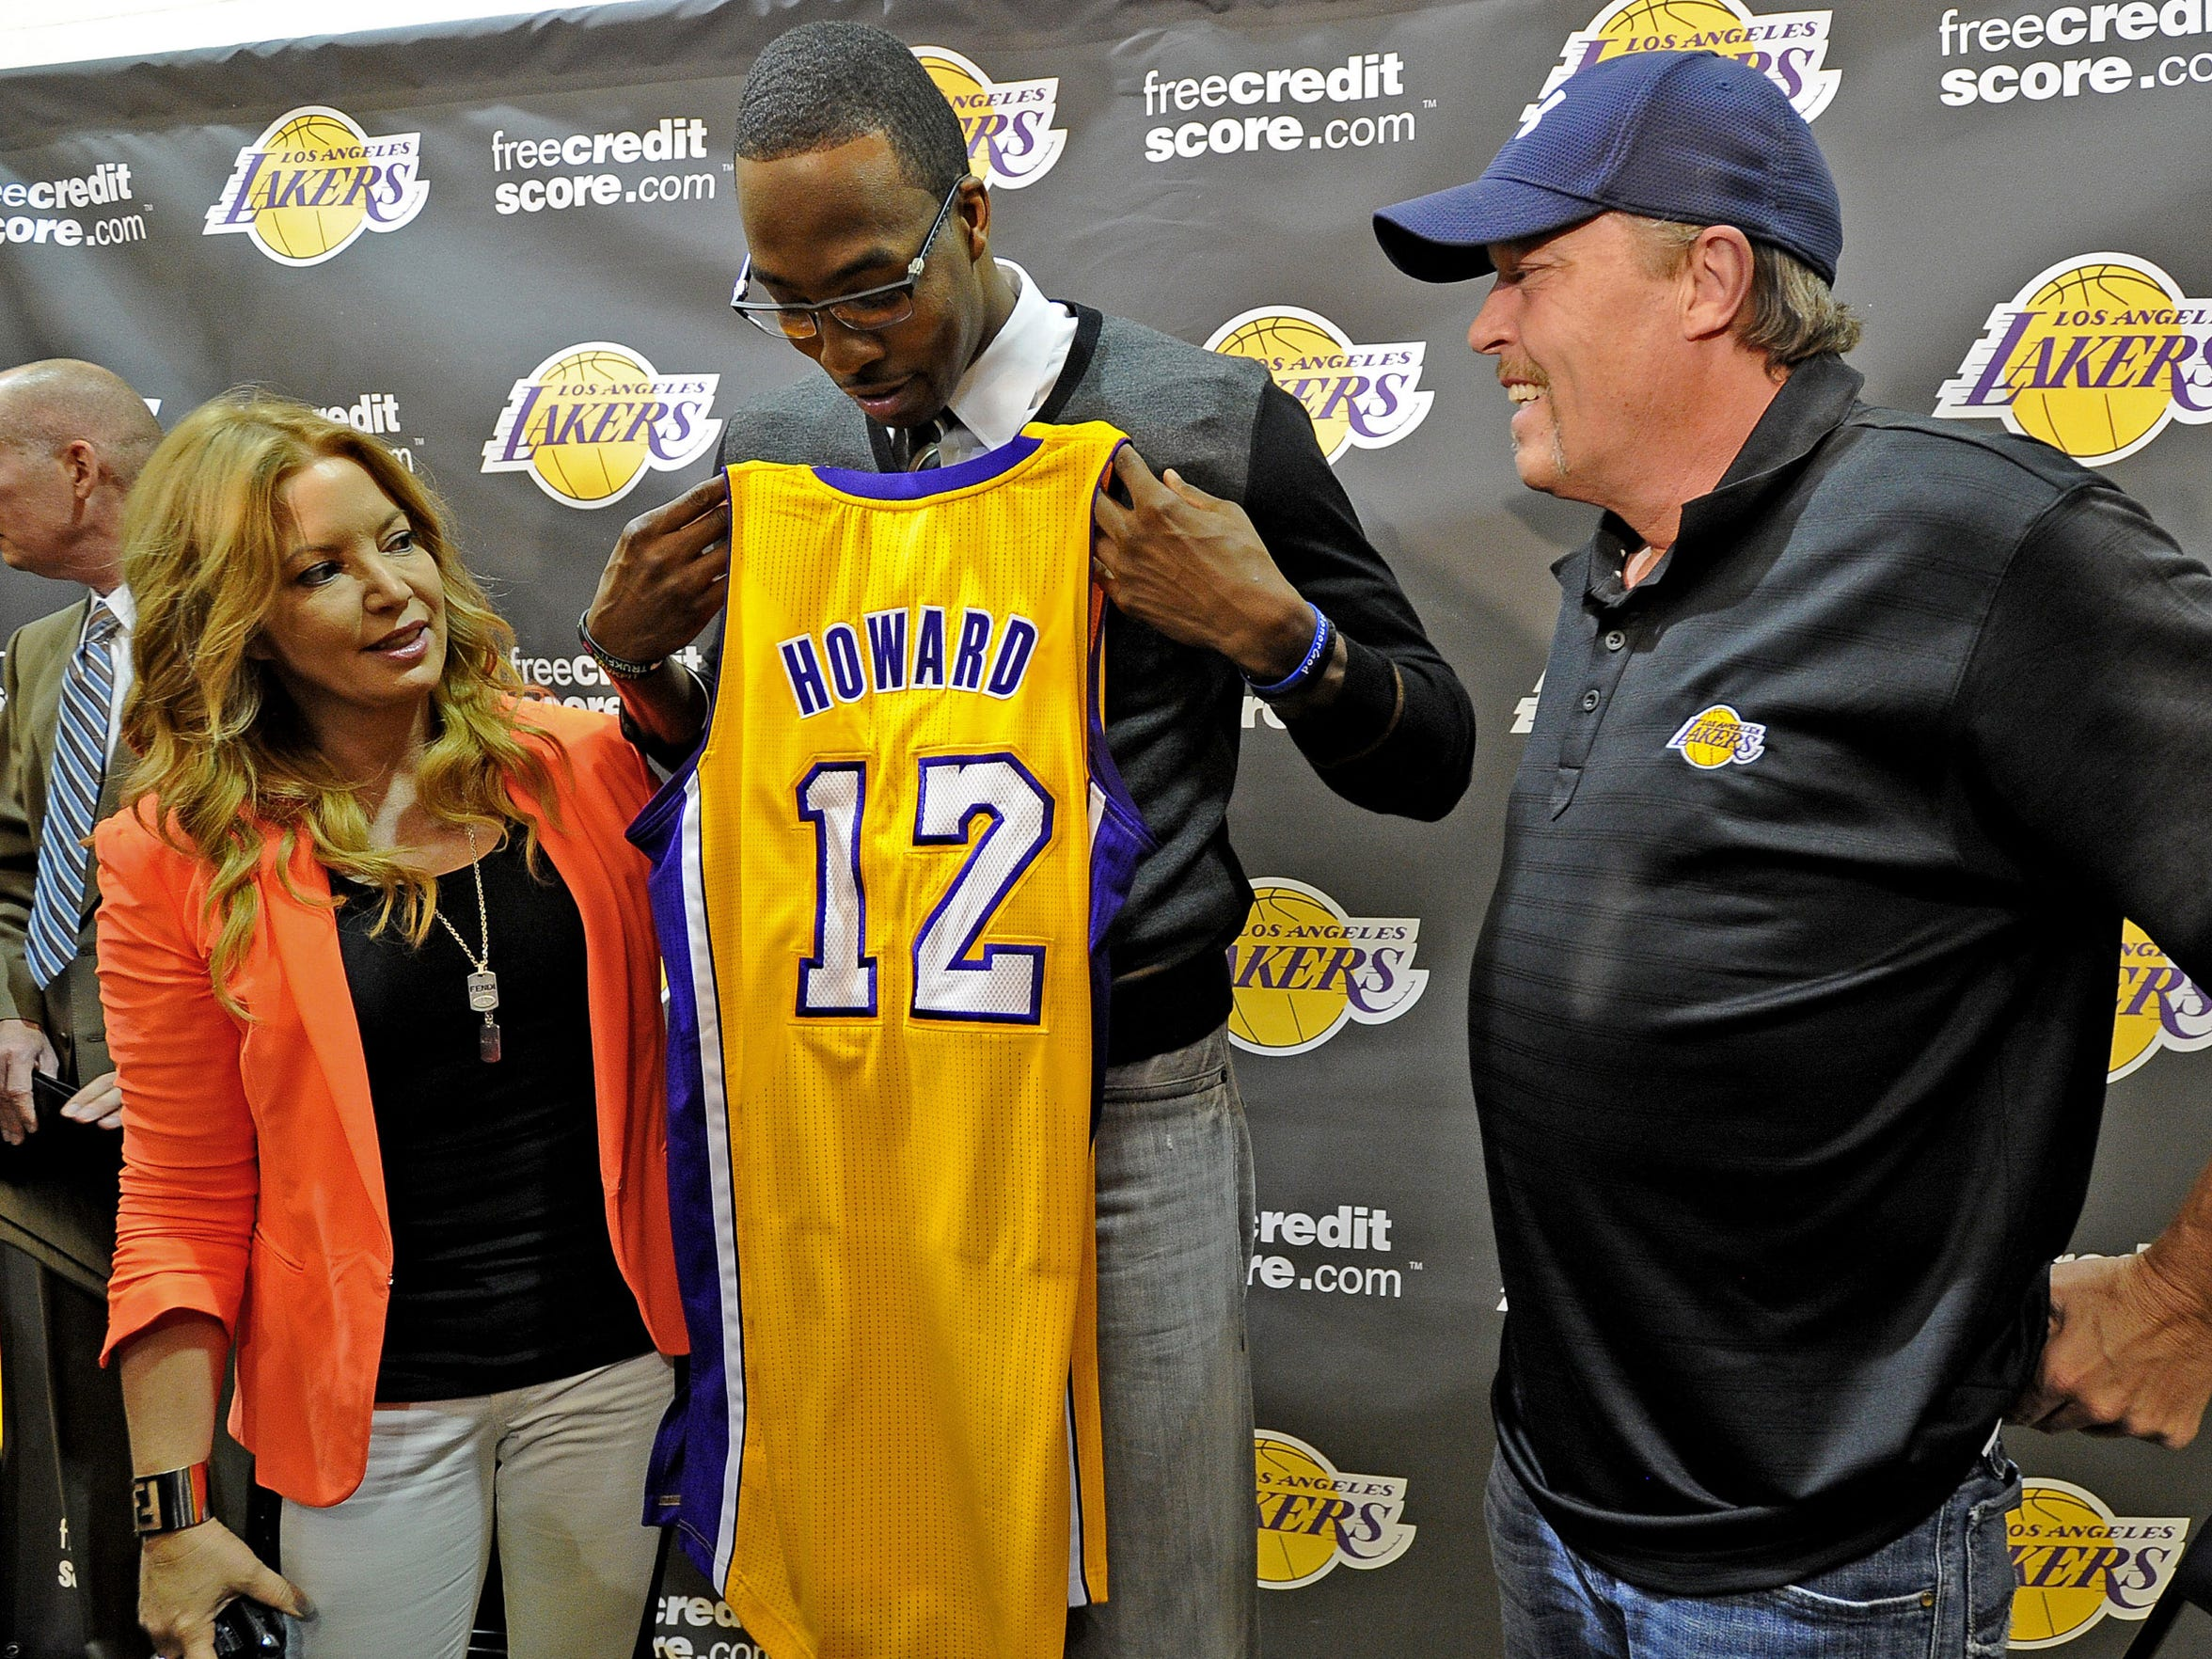 Jeanie Buss and Jim Buss welcome Dwight Howard in 2012 as he holds his jersey during a press conference held to introduce the three-time defensive player of the year who was acquired in a four-team trade from the Orlando Magic that offseason.